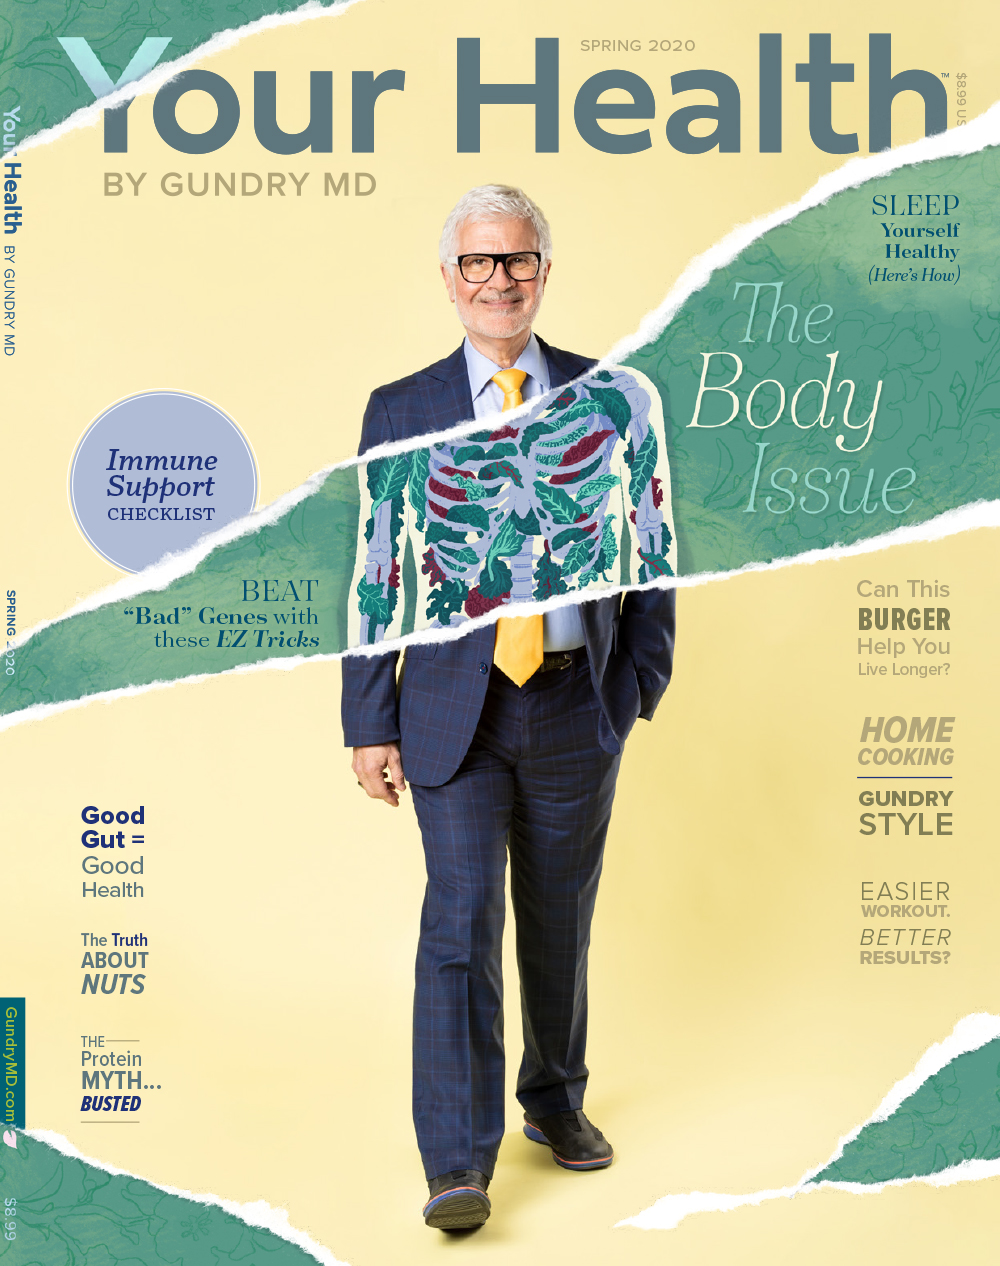 The Body Issue: Cover design